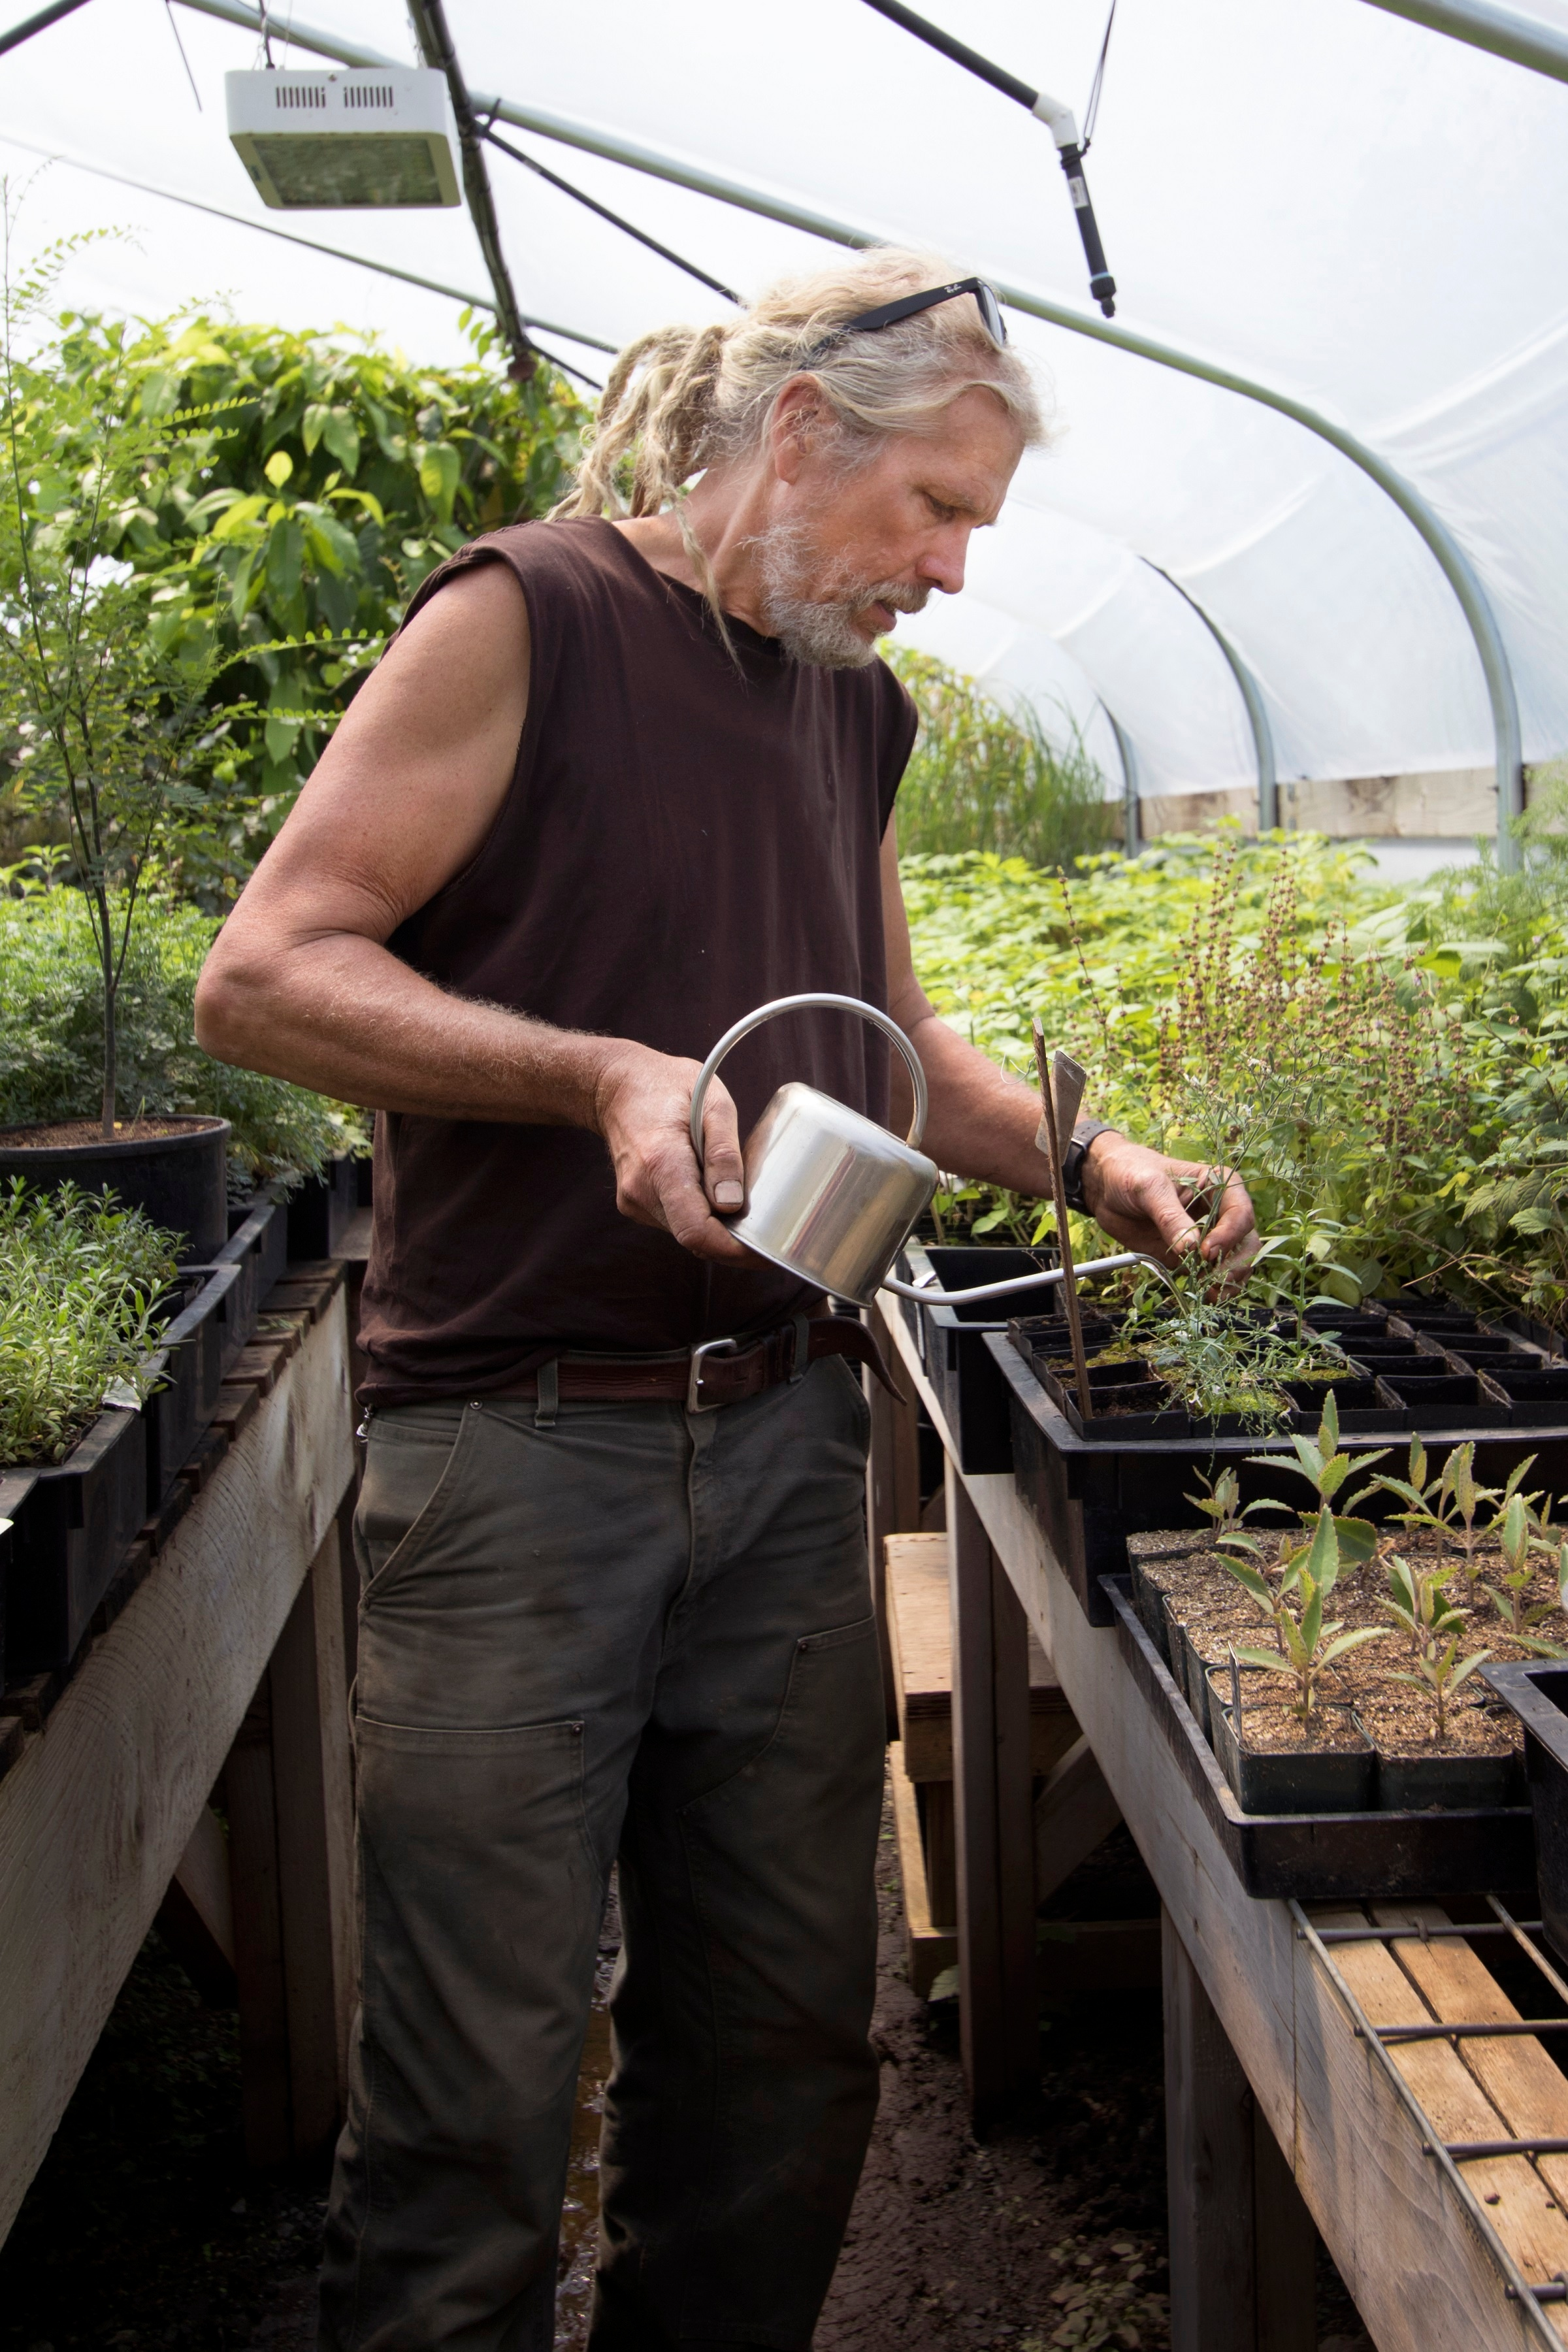 Richo Cech watering seedling plants in his greenhouse in Southern Oregon